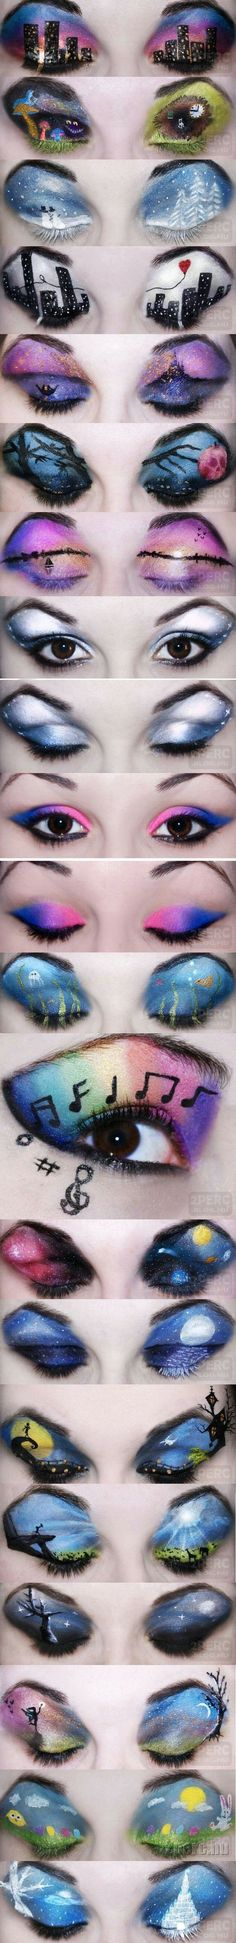 Amazing eyes. the girl who did these eyes is almost completely blind